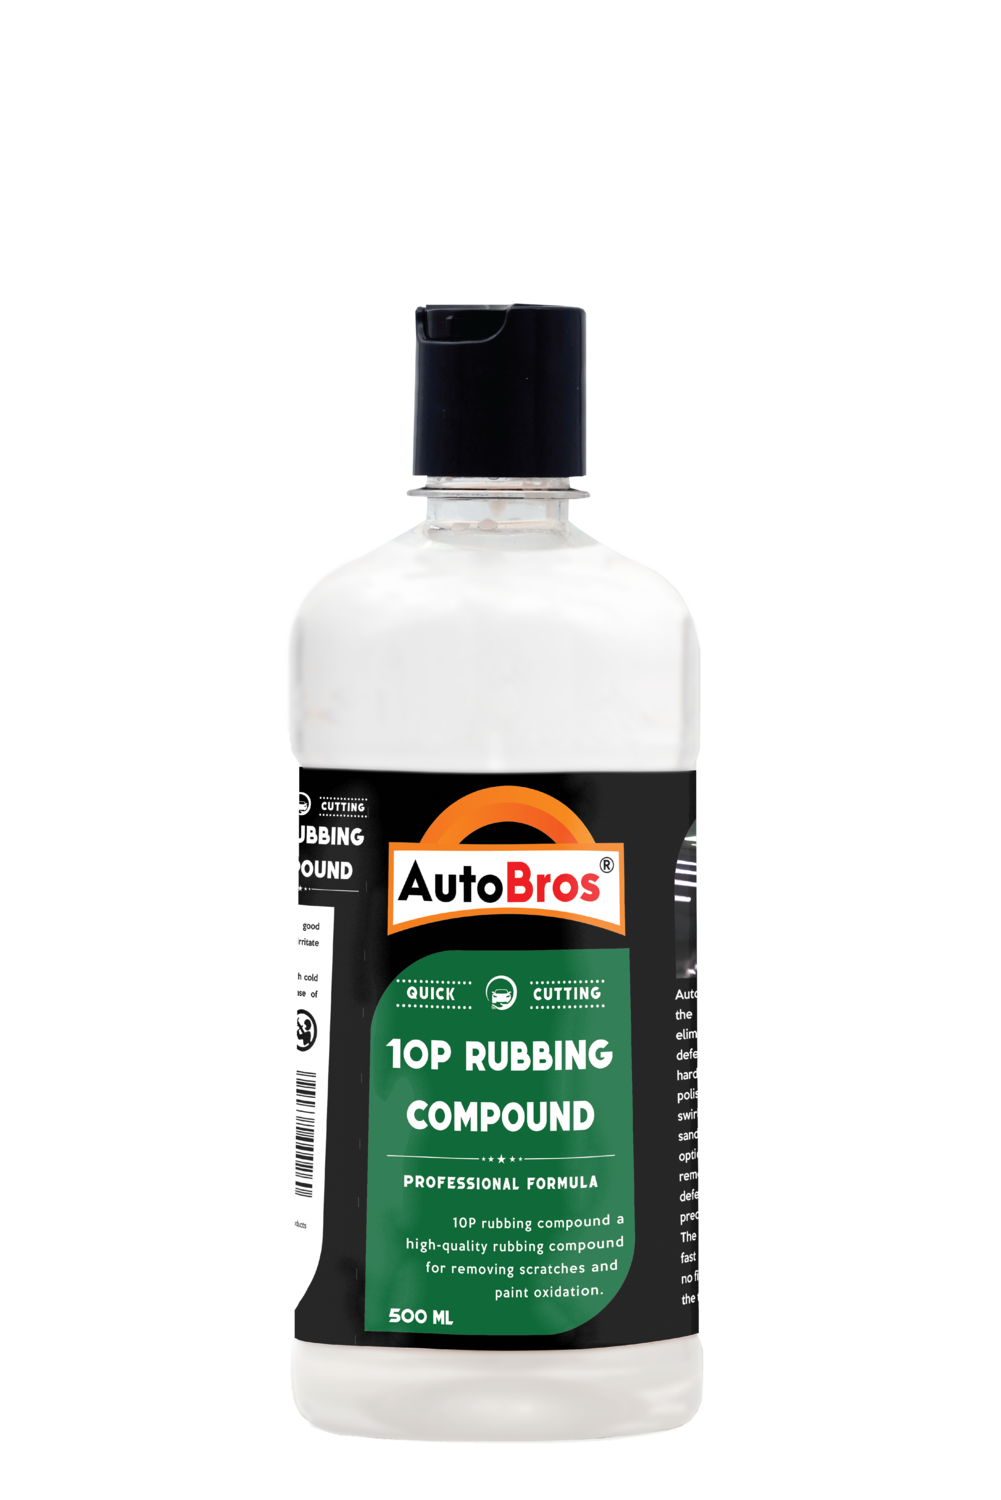 10P Rubbing Compound | Medium Cutting Compound | Removes 3000 Sand Paper Marks | Gives High Gloss & Quick Cutting |